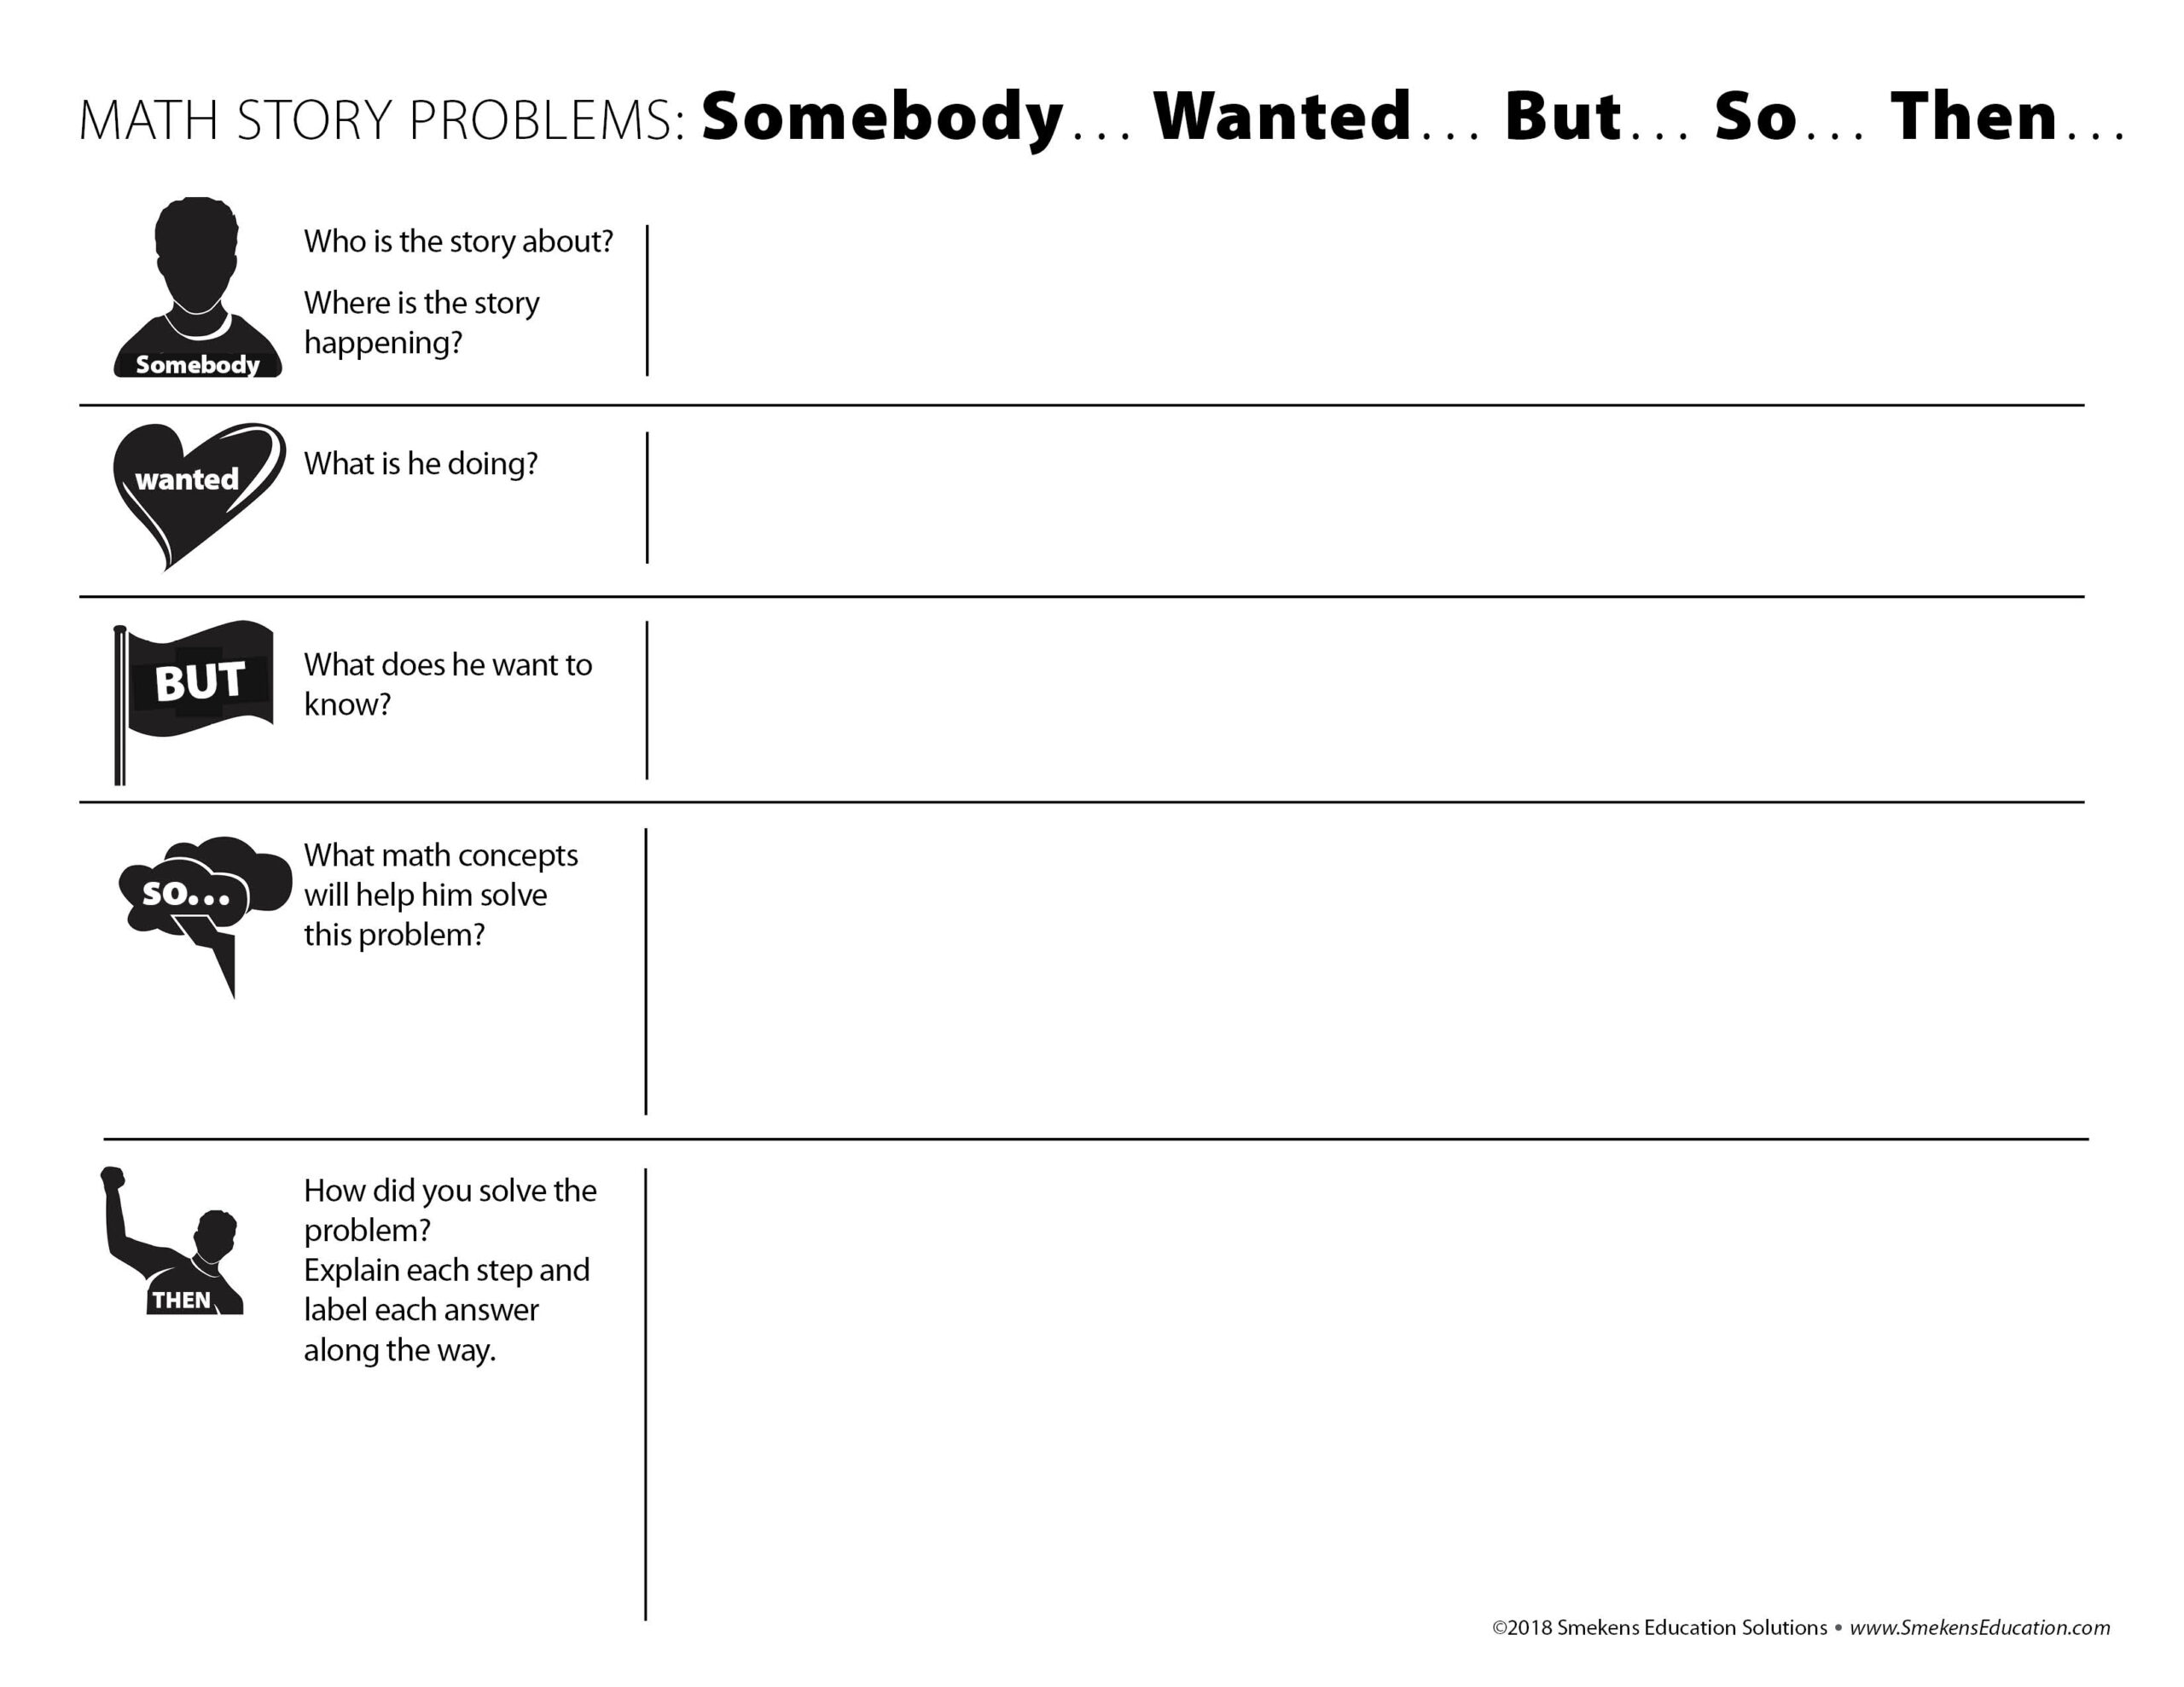 Somebody, Wanted, But, So, Then Math Story Problem Template